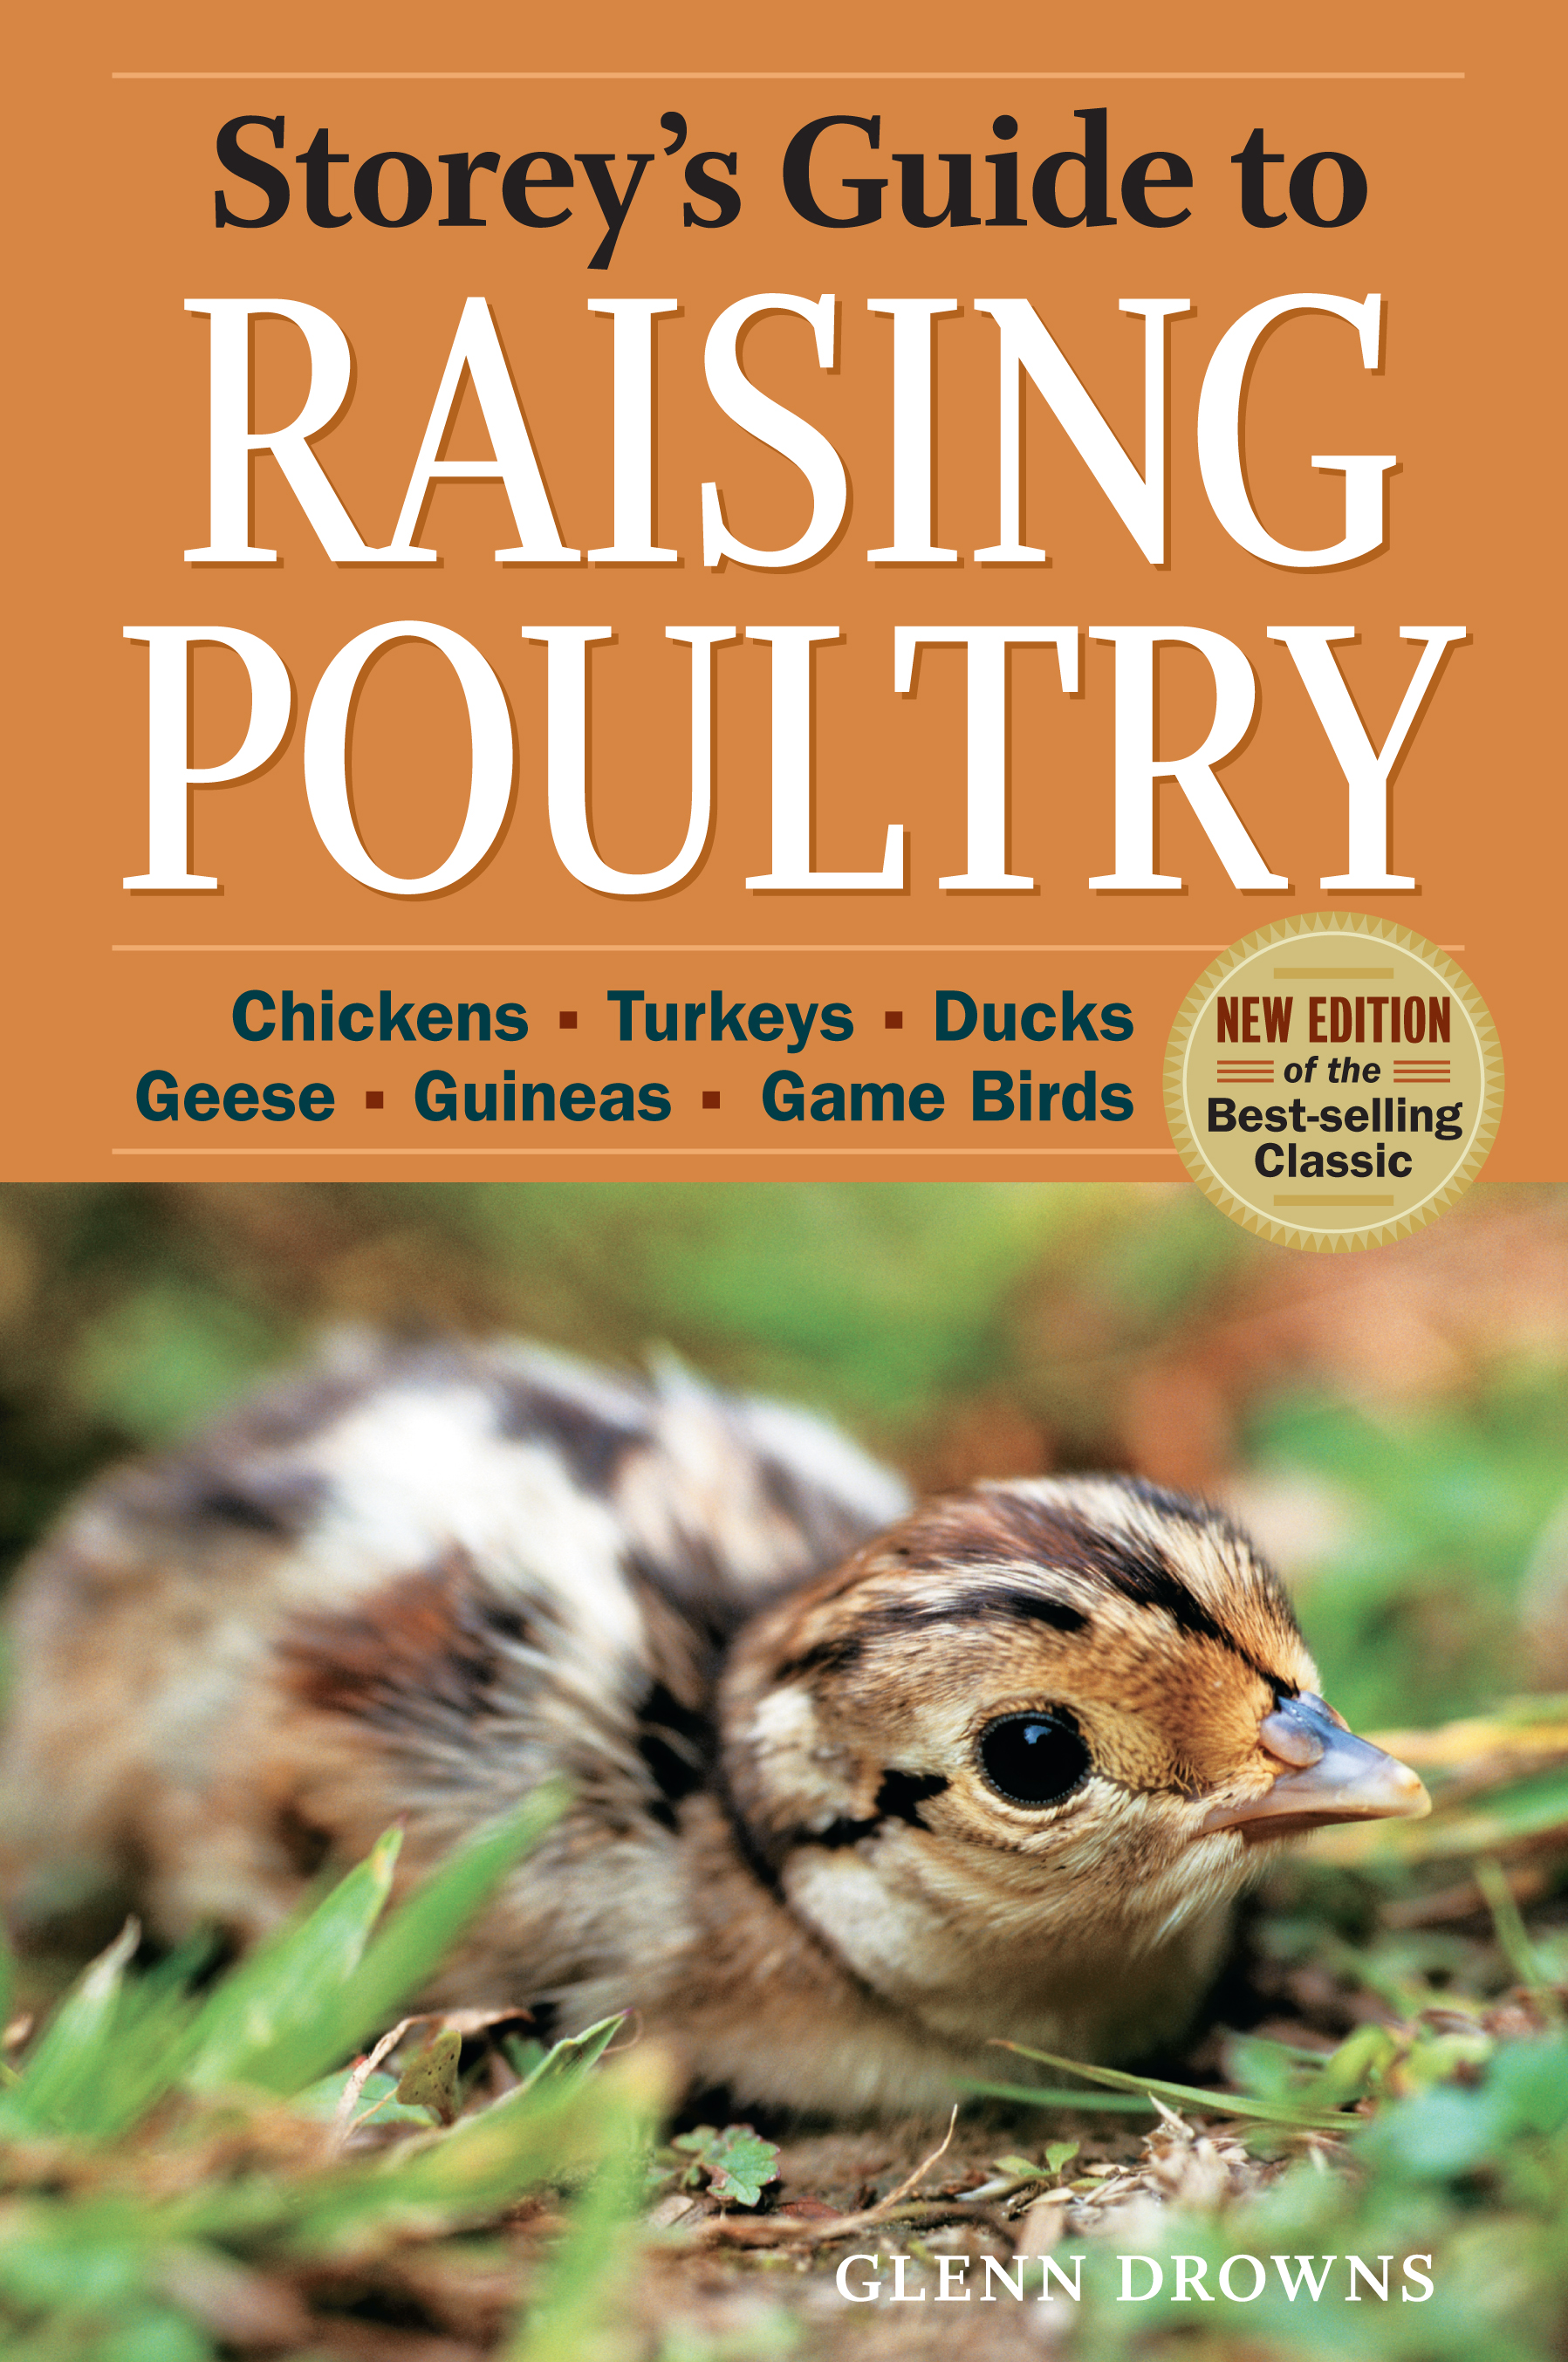 Storey's Guide to Raising Poultry, 4th Edition Chickens, Turkeys, Ducks, Geese, Guineas, Game Birds - Glenn Drowns